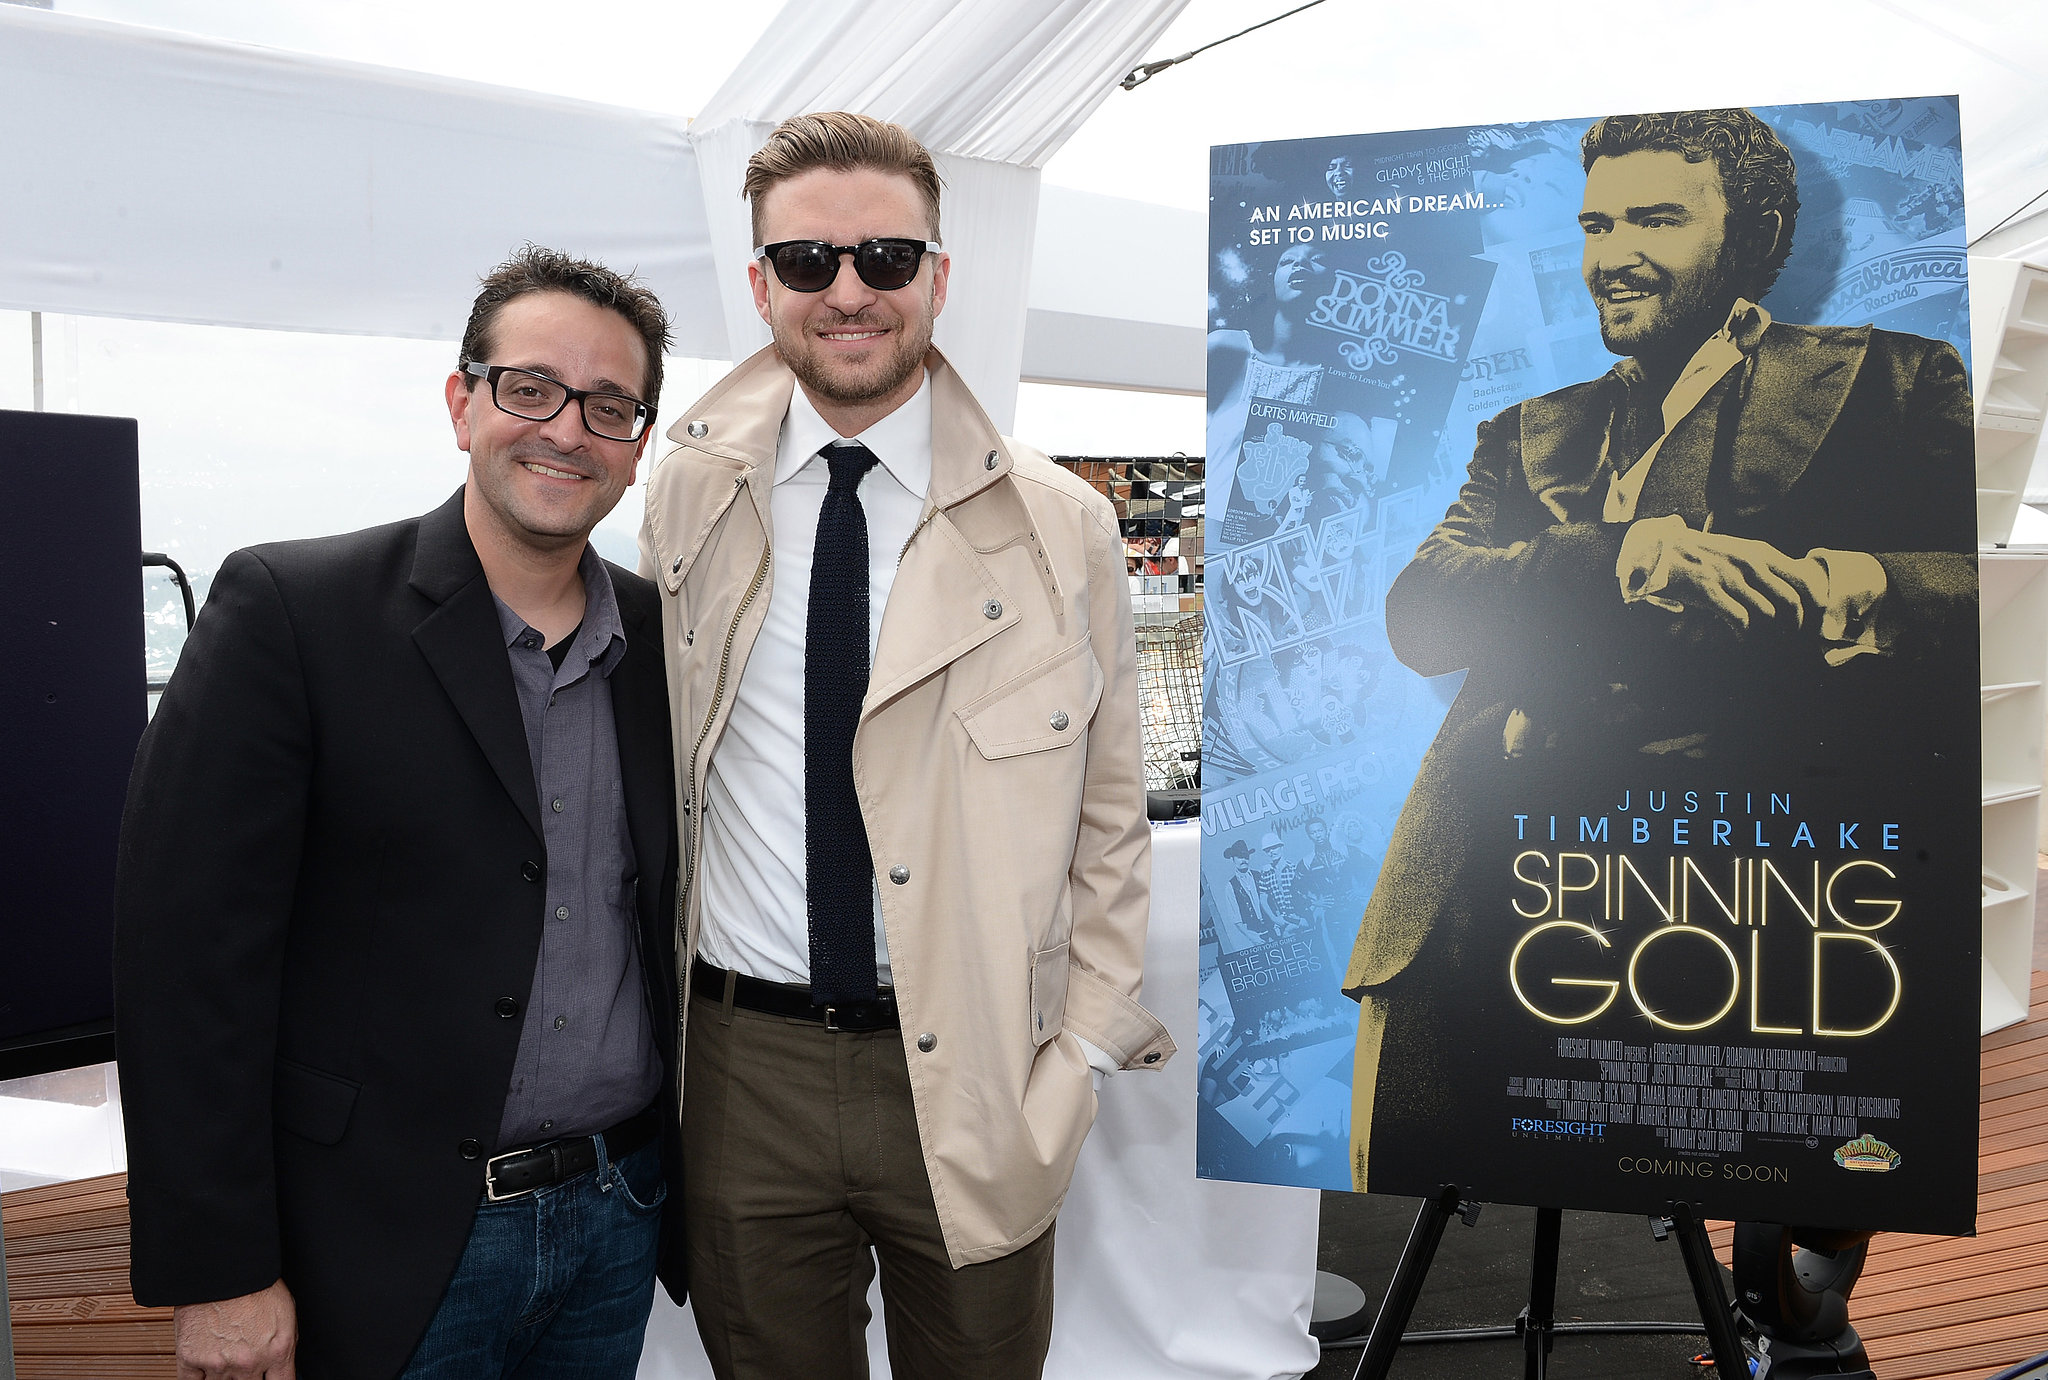 Justin Timberlake celebrated the film Spinning Gold at Torch Cannes.